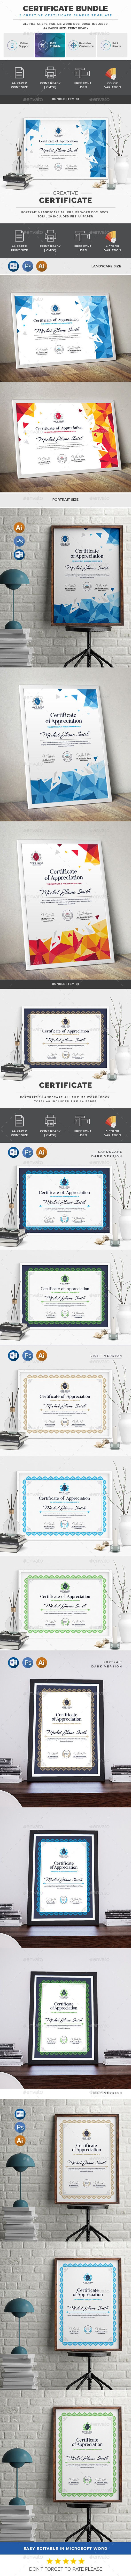 Best Sale #Certificate Bundle 2 in 1 - Certificates #Stationery